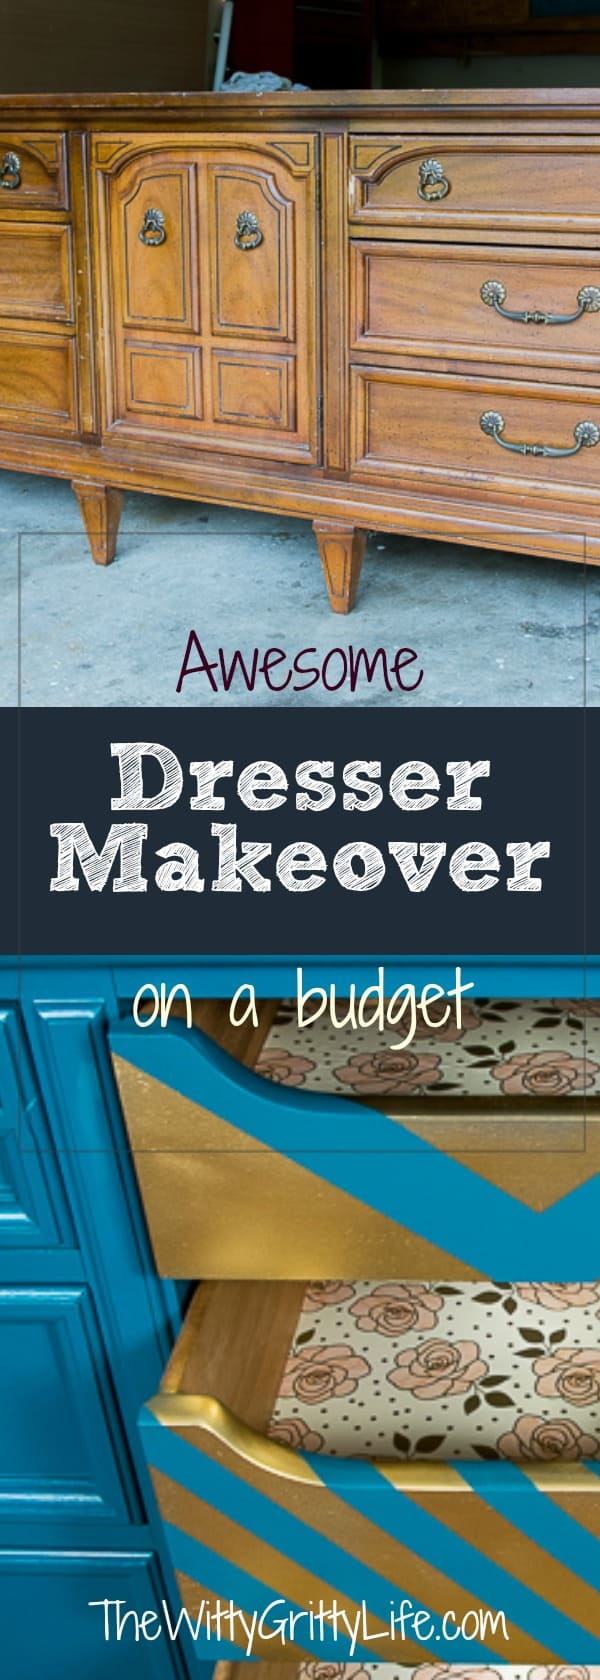 Nothing brings me more joy than bringing a sad old piece of furniture back to life. Transforming a dresser is not difficult to do. All it takes is a little know how and you can makeover a sad before into an amazing after. Let me show you how to create a piece of furniture you will be proud of!